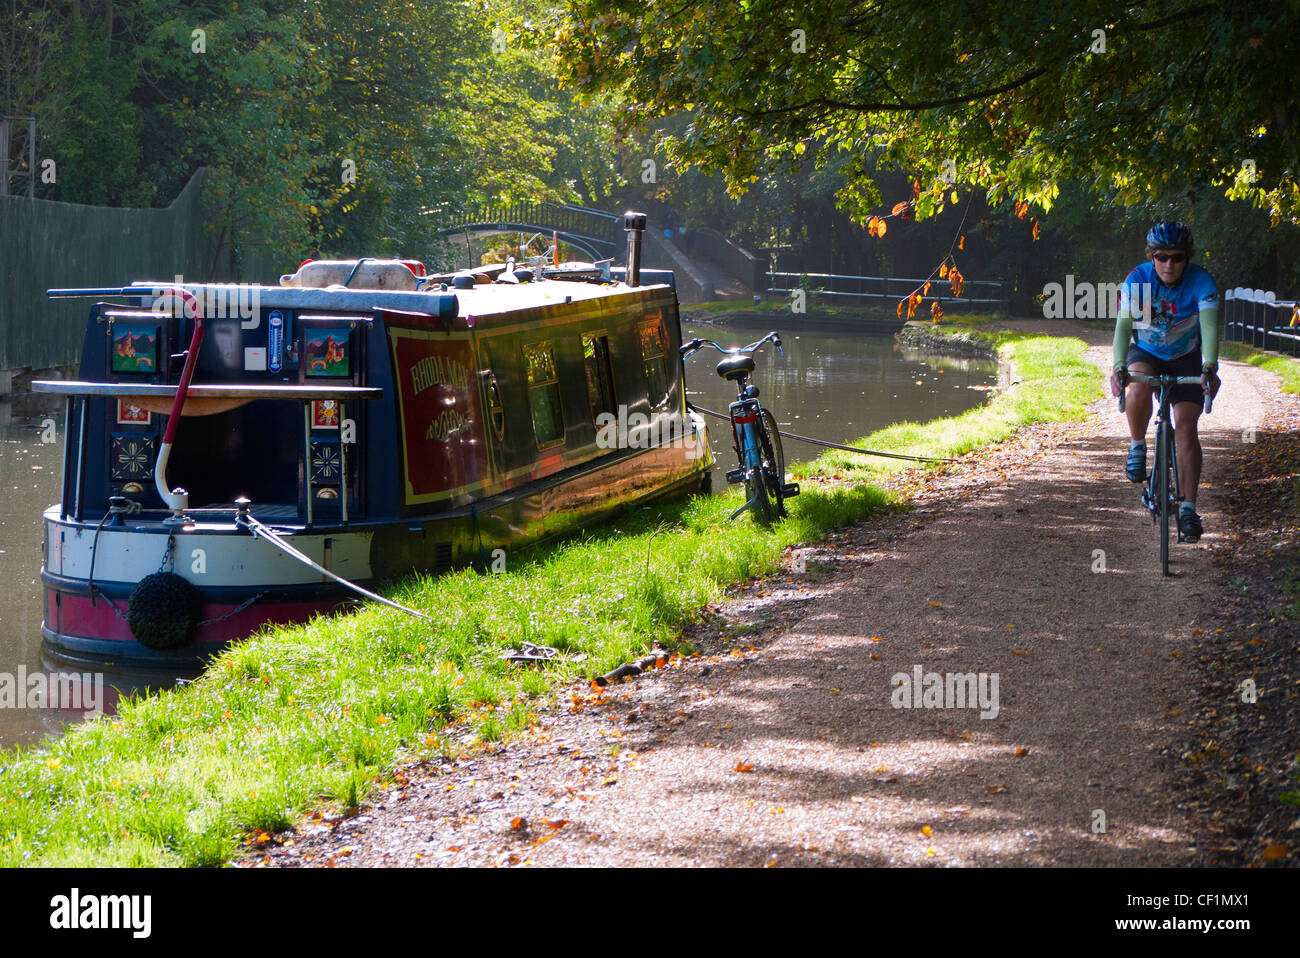 A cyclist riding along the towpath past a houseboat on Oxford Canal in Autumn. - Stock Image